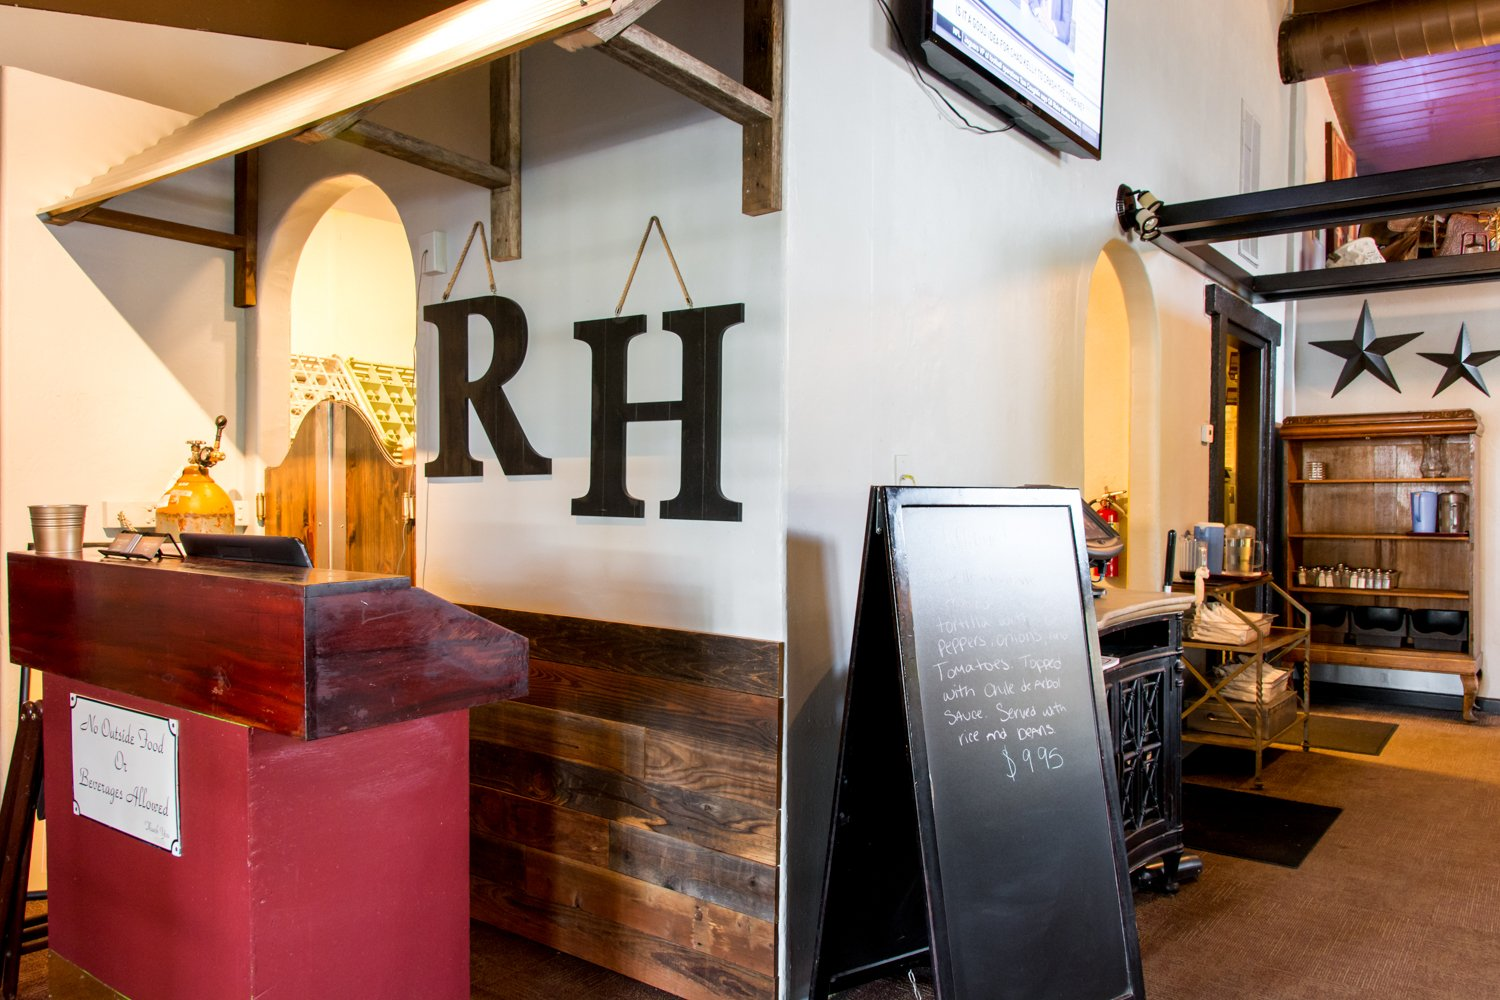 Red Hen Bar and Grill interior